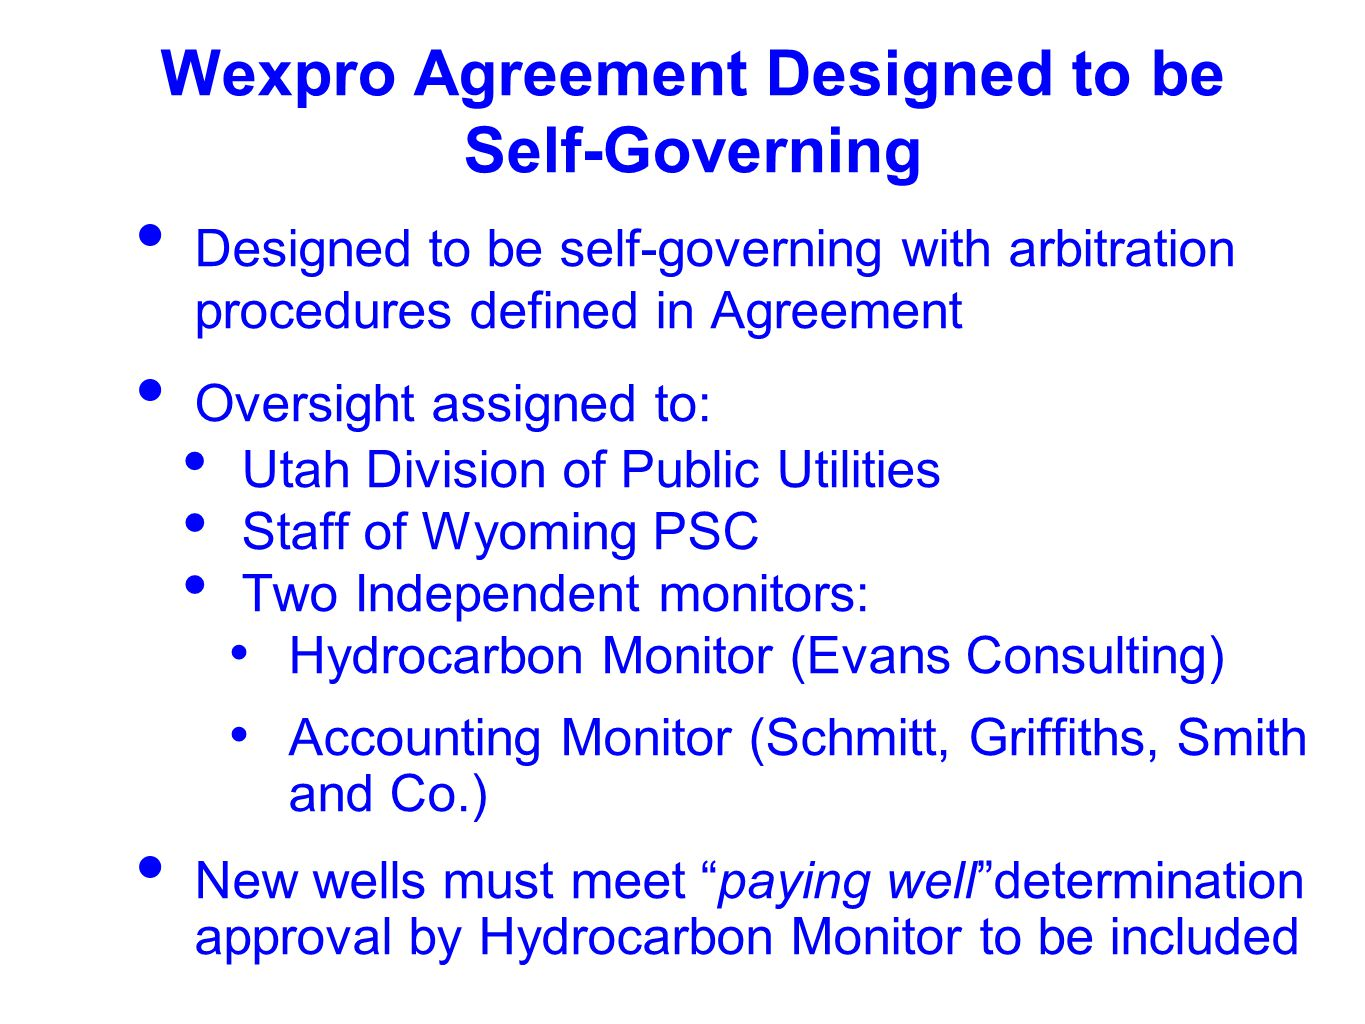 Wexpro Agreement Designed to be Self-Governing Designed to be self-governing with arbitration procedures defined in Agreement Oversight assigned to: Utah Division of Public Utilities Staff of Wyoming PSC Two Independent monitors: Hydrocarbon Monitor (Evans Consulting) Accounting Monitor (Schmitt, Griffiths, Smith and Co.) New wells must meet paying well determination approval by Hydrocarbon Monitor to be included